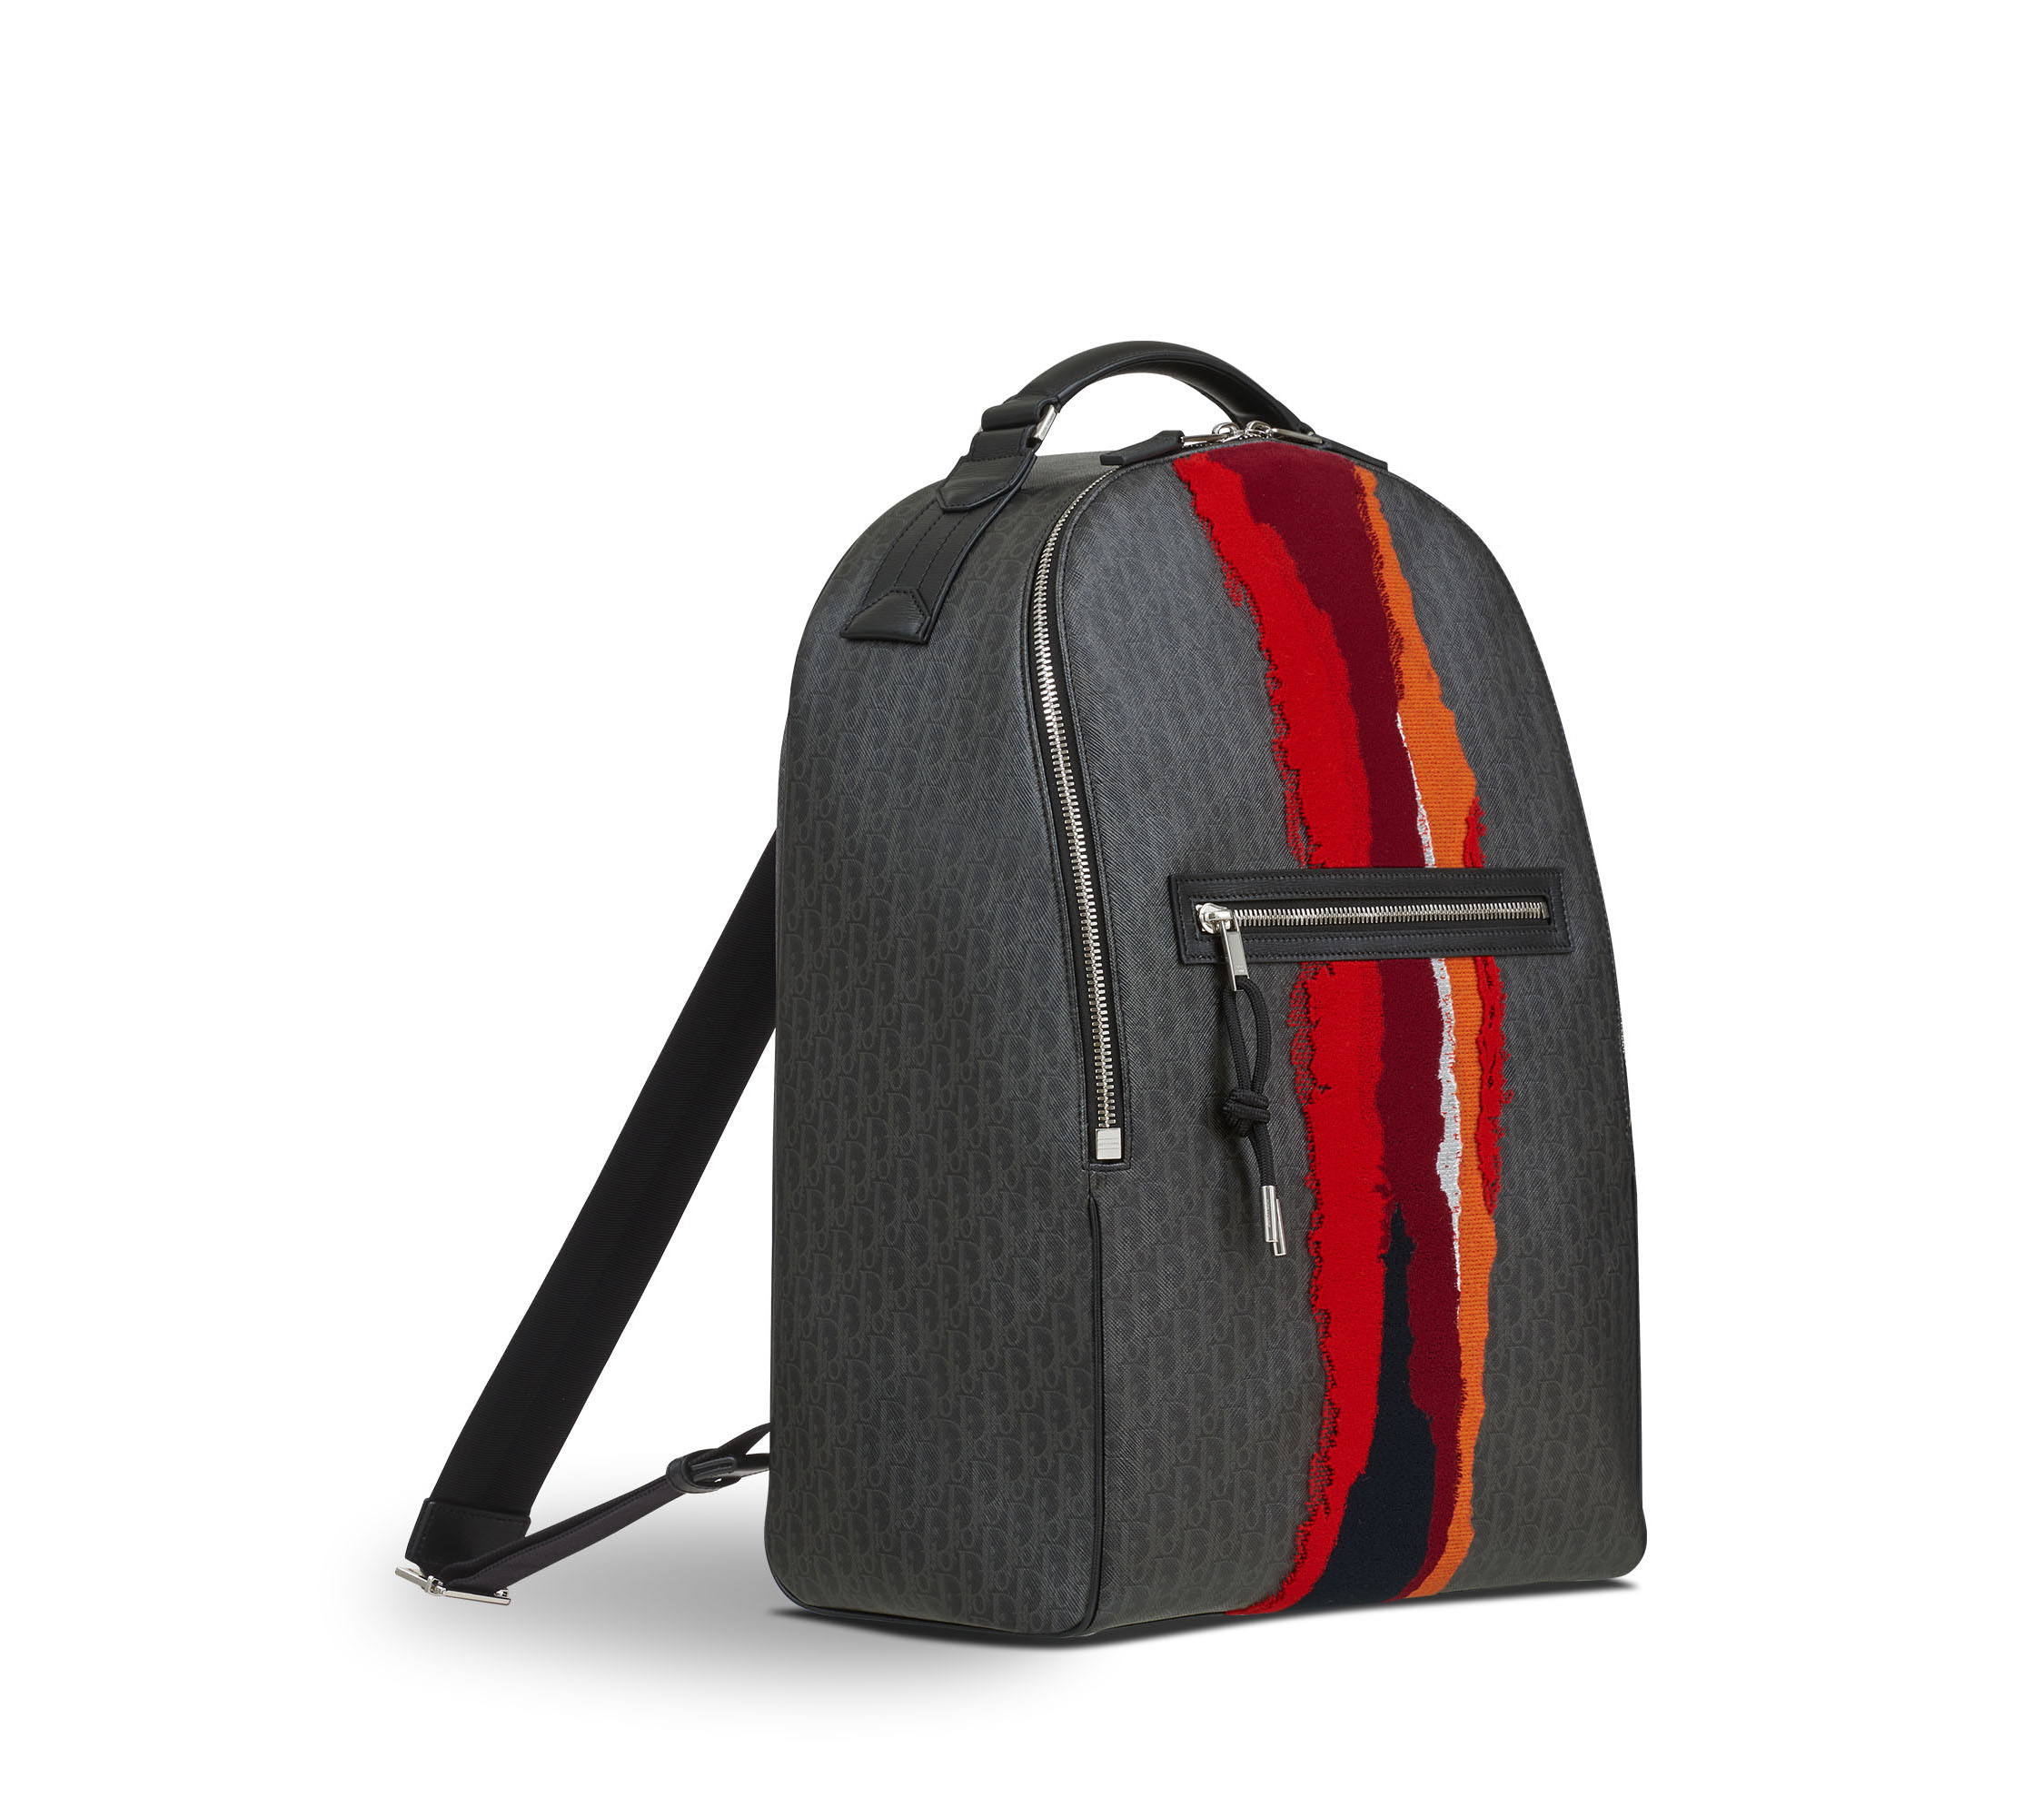 【DIOR HOMME】17SS新作★ダークライトキャンバスBackpack関税込